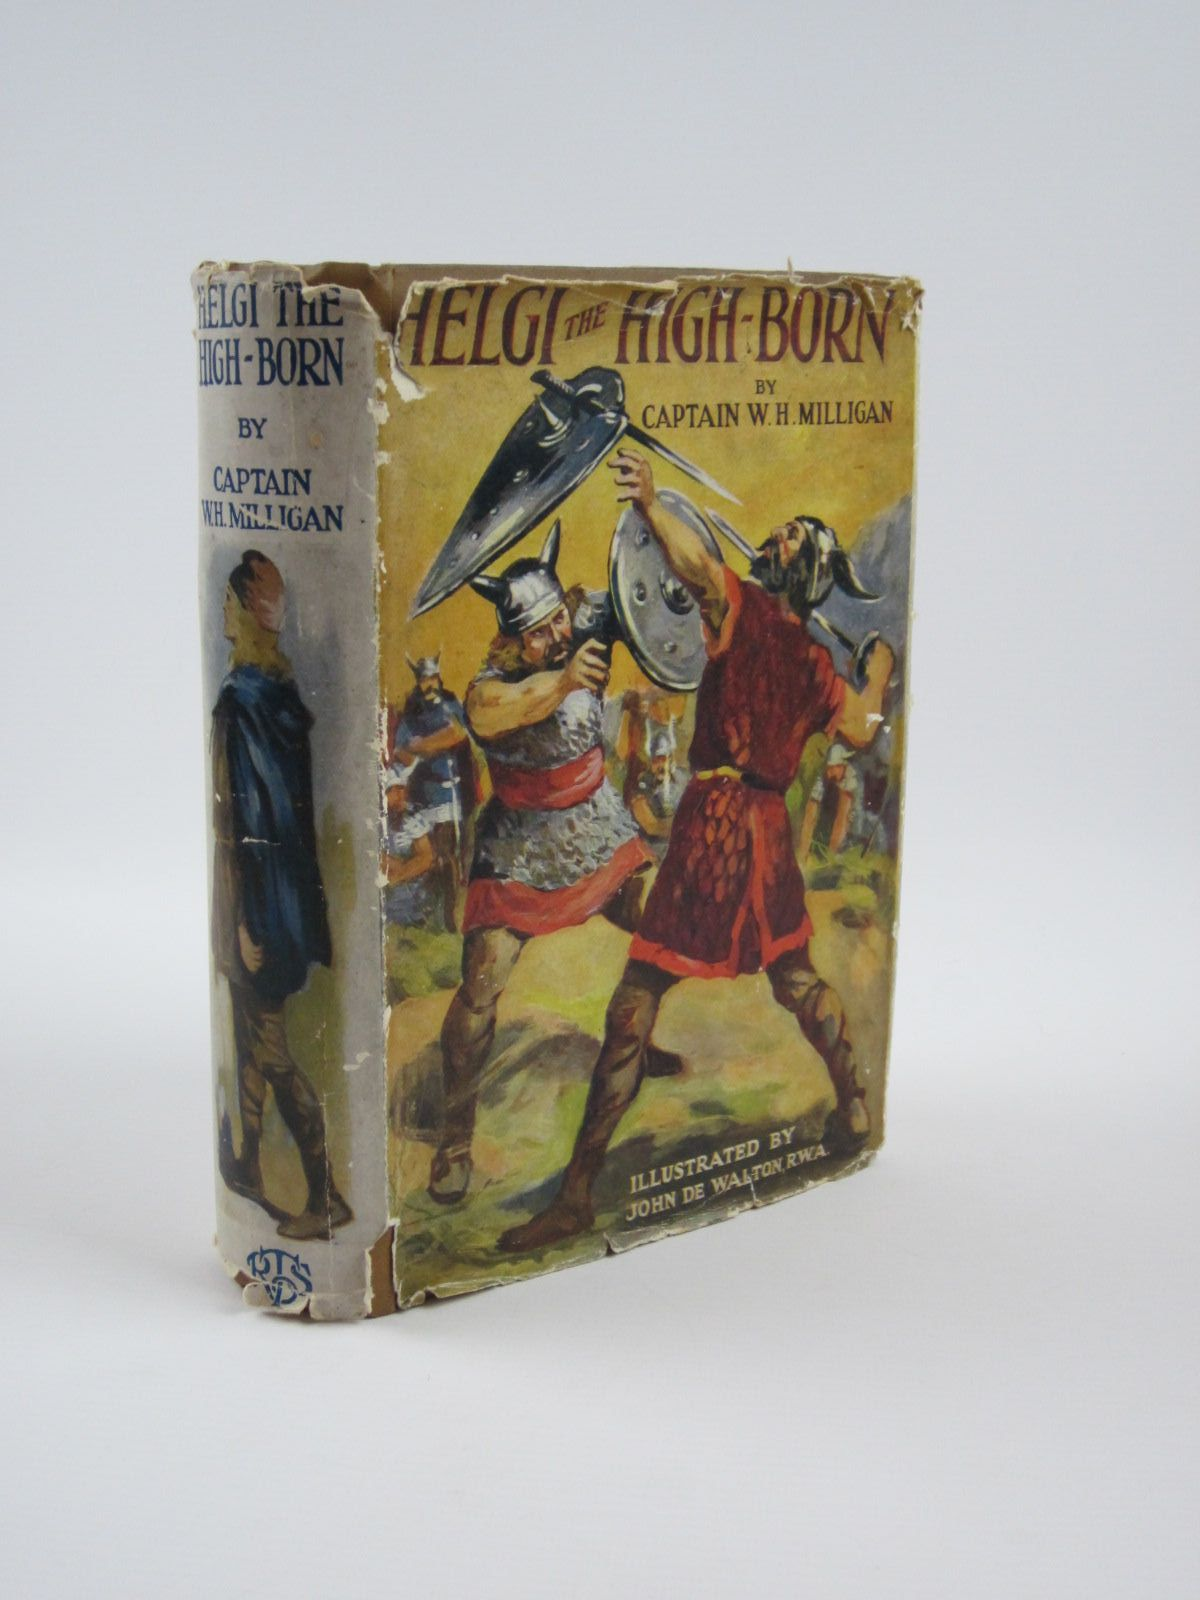 Photo of HELGI THE HIGH-BORN written by Milligan, Captain W.H. illustrated by De Walton, John published by The Boy's Own Paper (STOCK CODE: 1310178)  for sale by Stella & Rose's Books